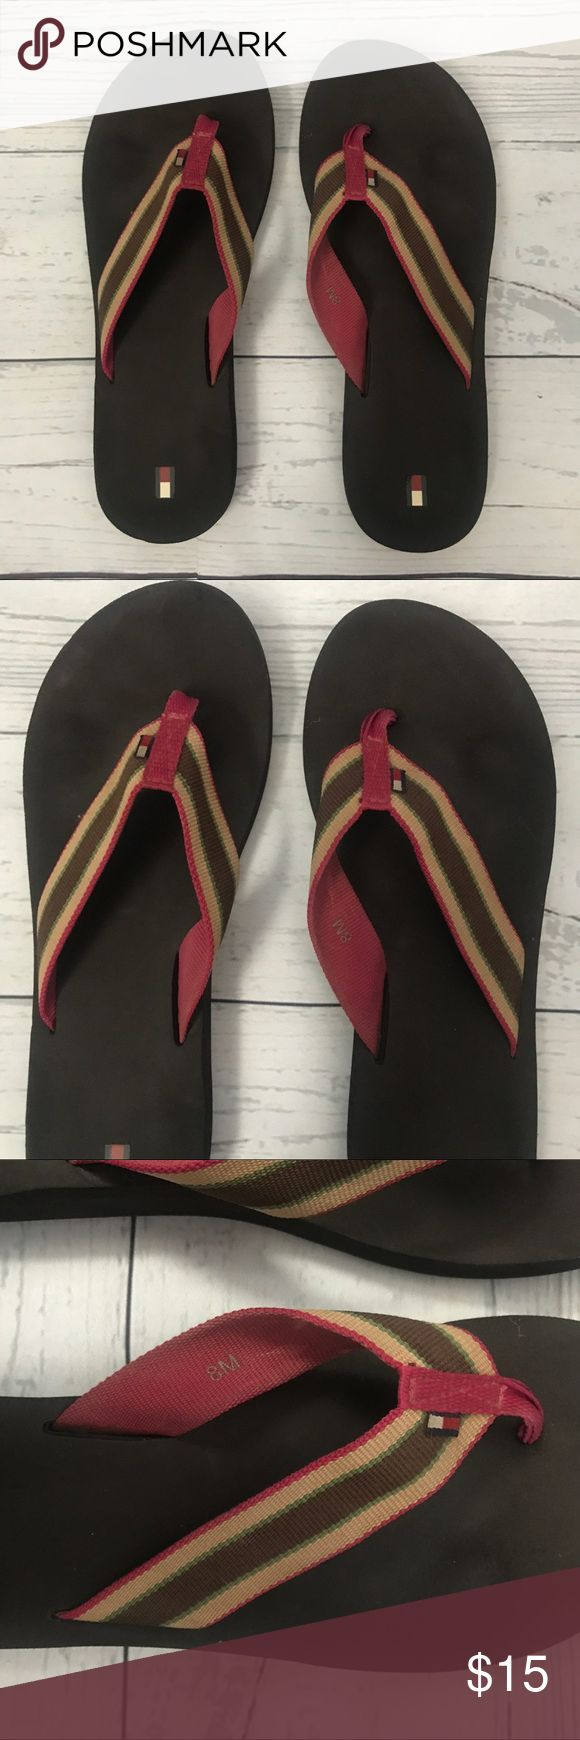 Tommy Hilfiger Striped Flip Flops Tommy Hilfiger Striped Flip Flops size 8  Brown foam bottoms with fabric striped straps from Tommy Hilfiger. Pink, brown, green and Gold.  Only been worn a few times. Small amount of indention From wear. Shown in pictures  Offers welcome no trades Tommy Hilfiger Shoes Sandals